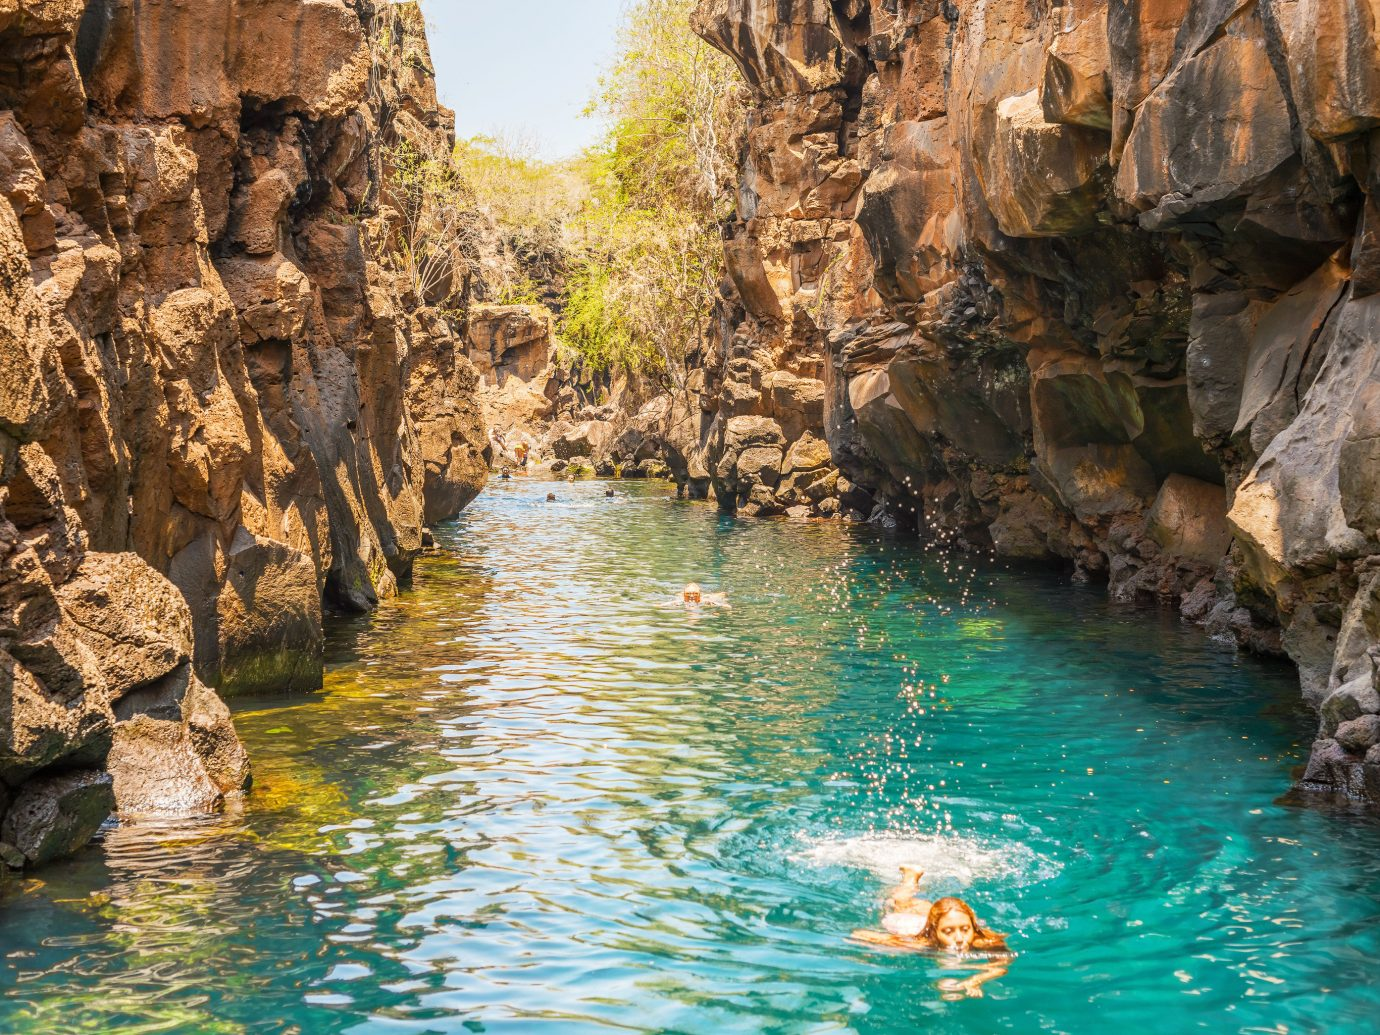 Lakes + Rivers Landmarks Trip Ideas water outdoor rock landform geographical feature Nature valley body of water River wadi canyon water feature formation terrain